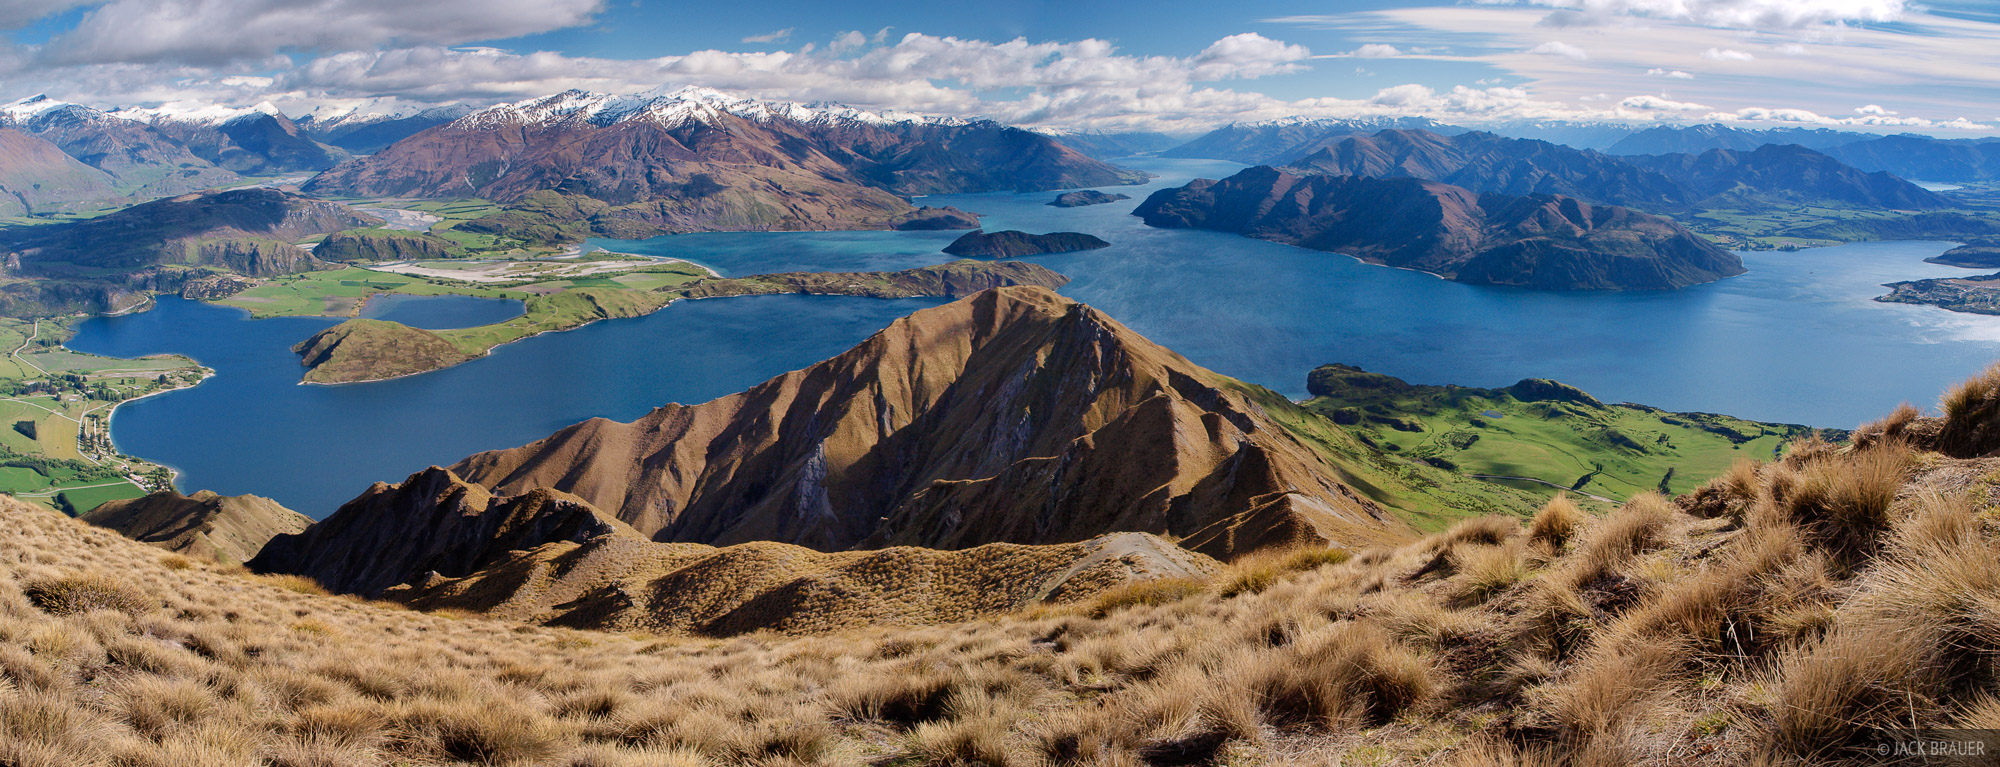 Lake Wanaka, Roys Peak, Southern Alps, panorama, New Zealand, photo